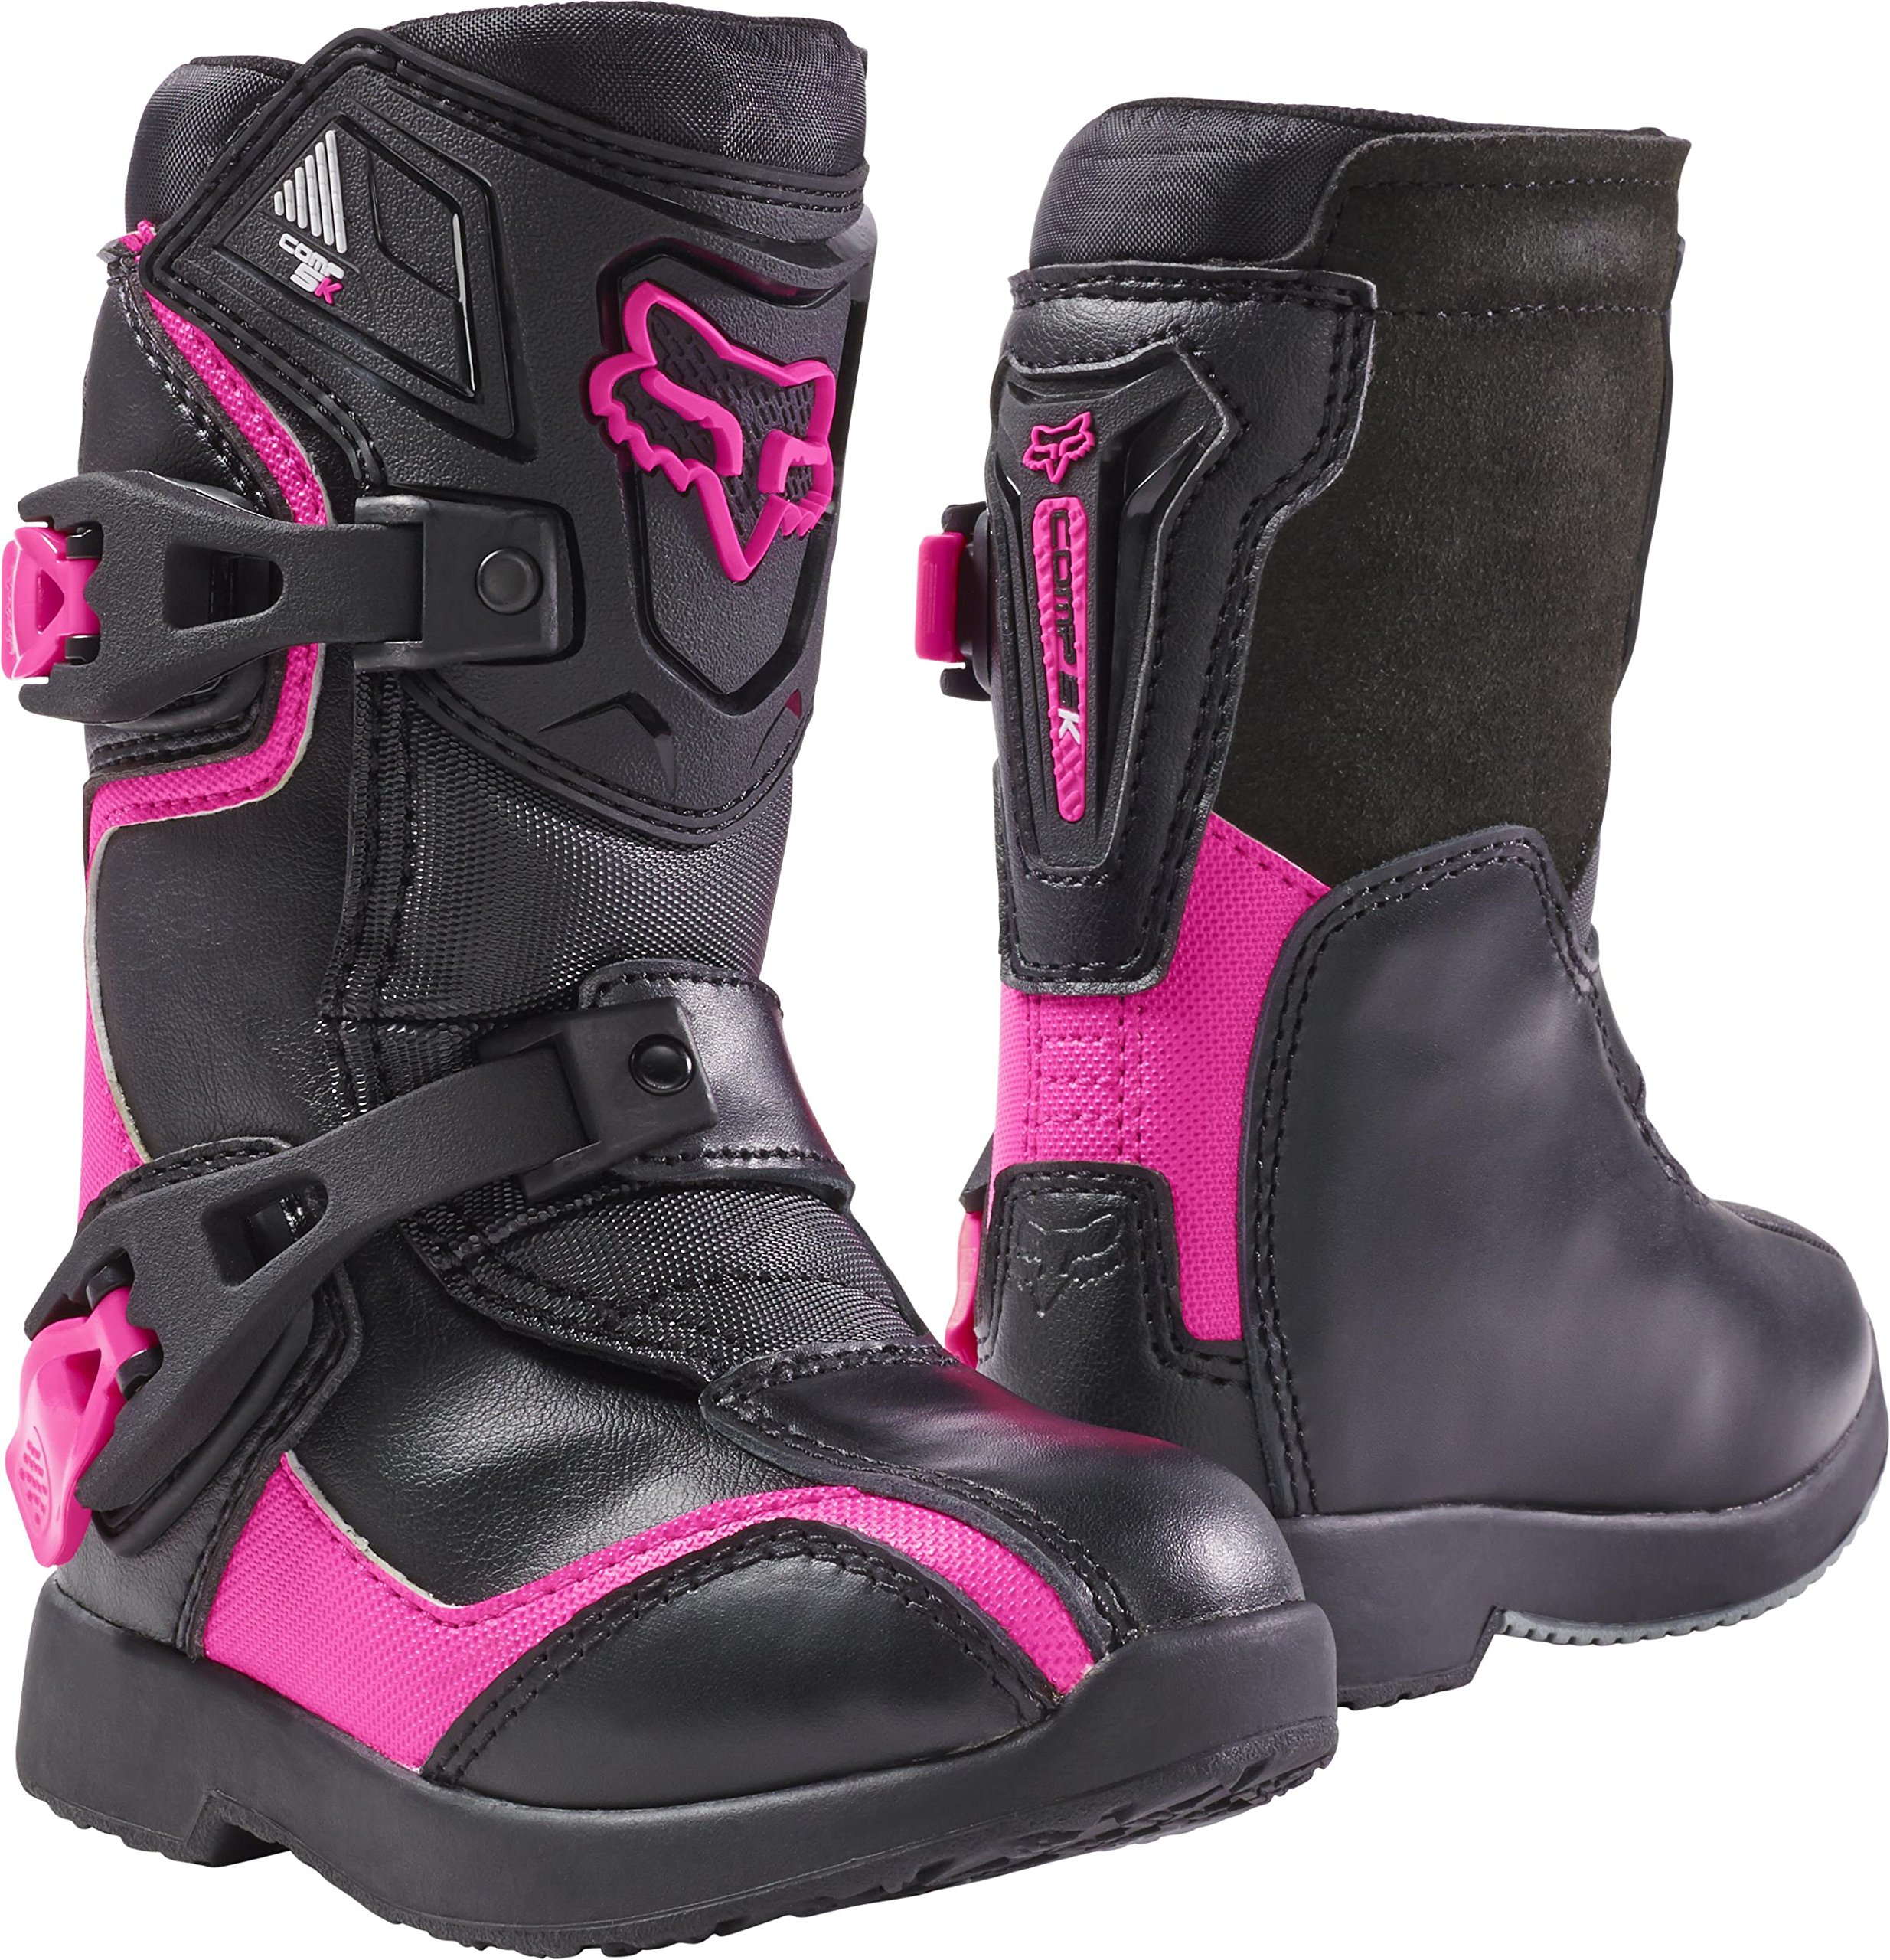 2018 Fox Racing Kids Comp 5K Boots-Black/Pink-K12